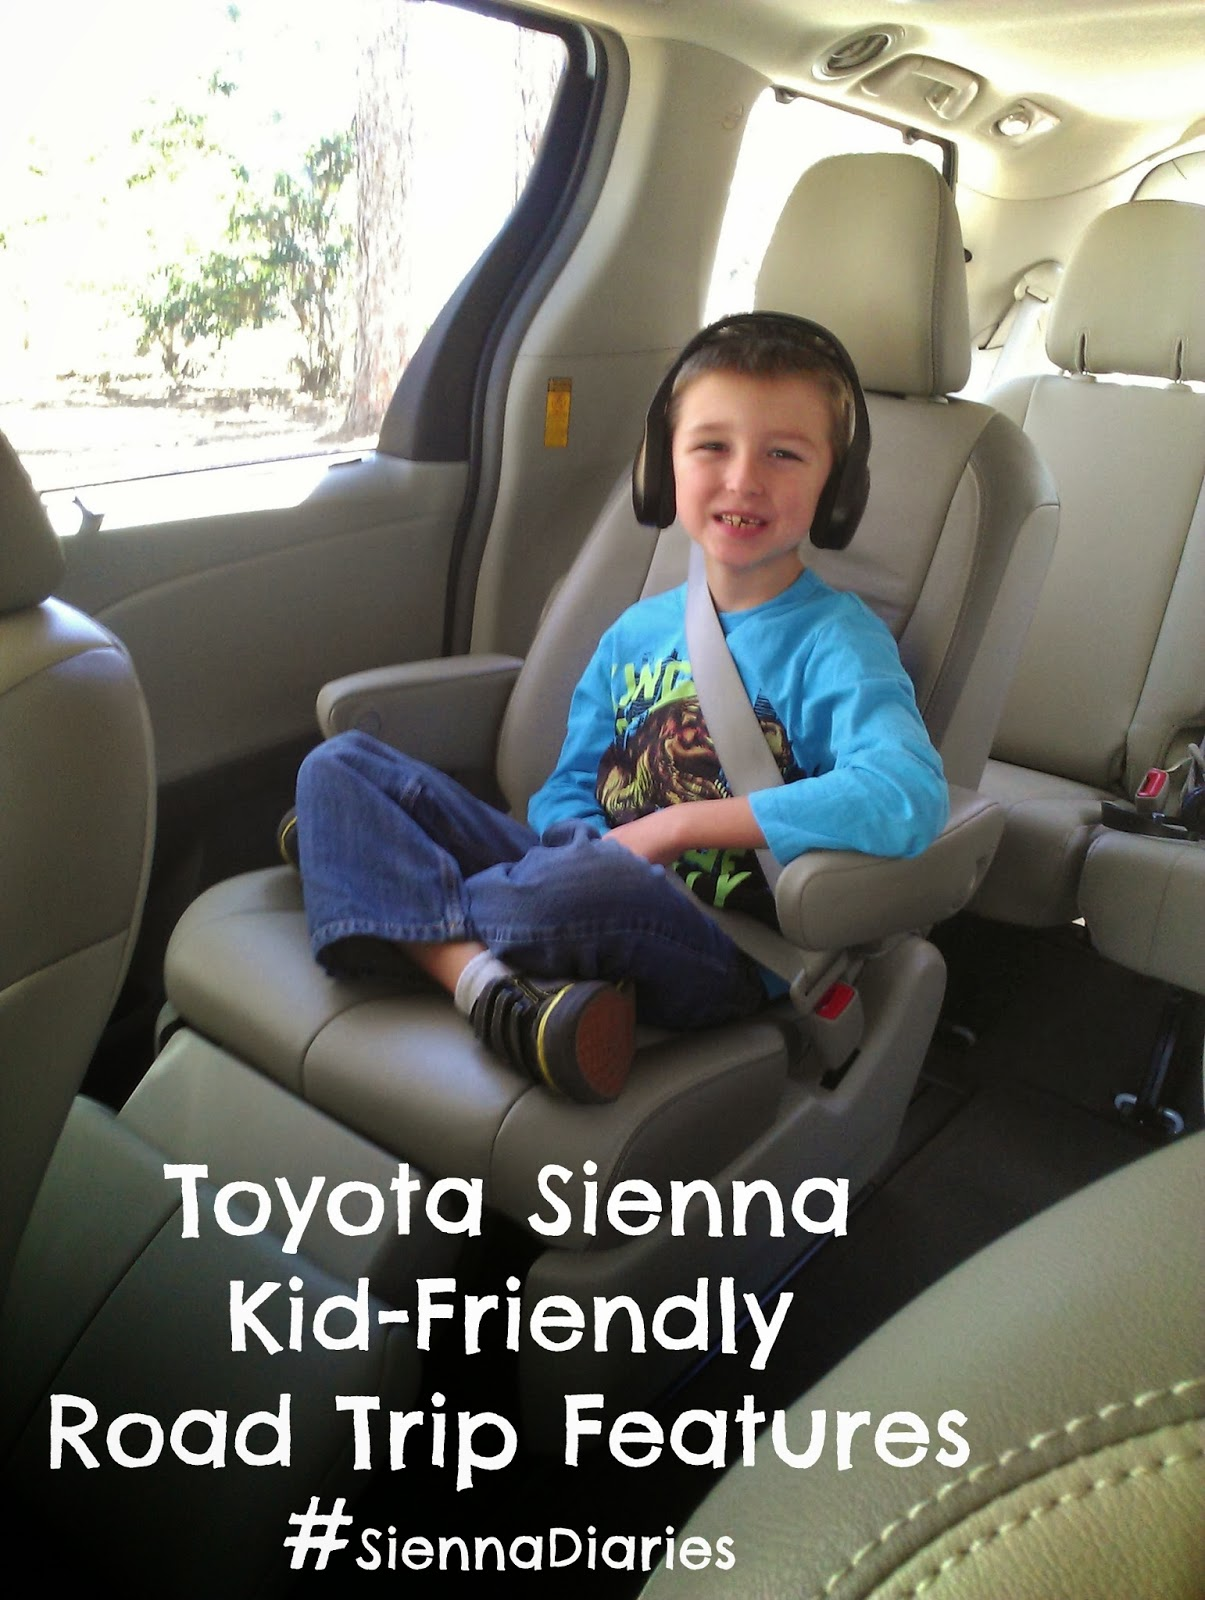 Kid-friendly features of the Toyota Sienna. #SiennaDiaries